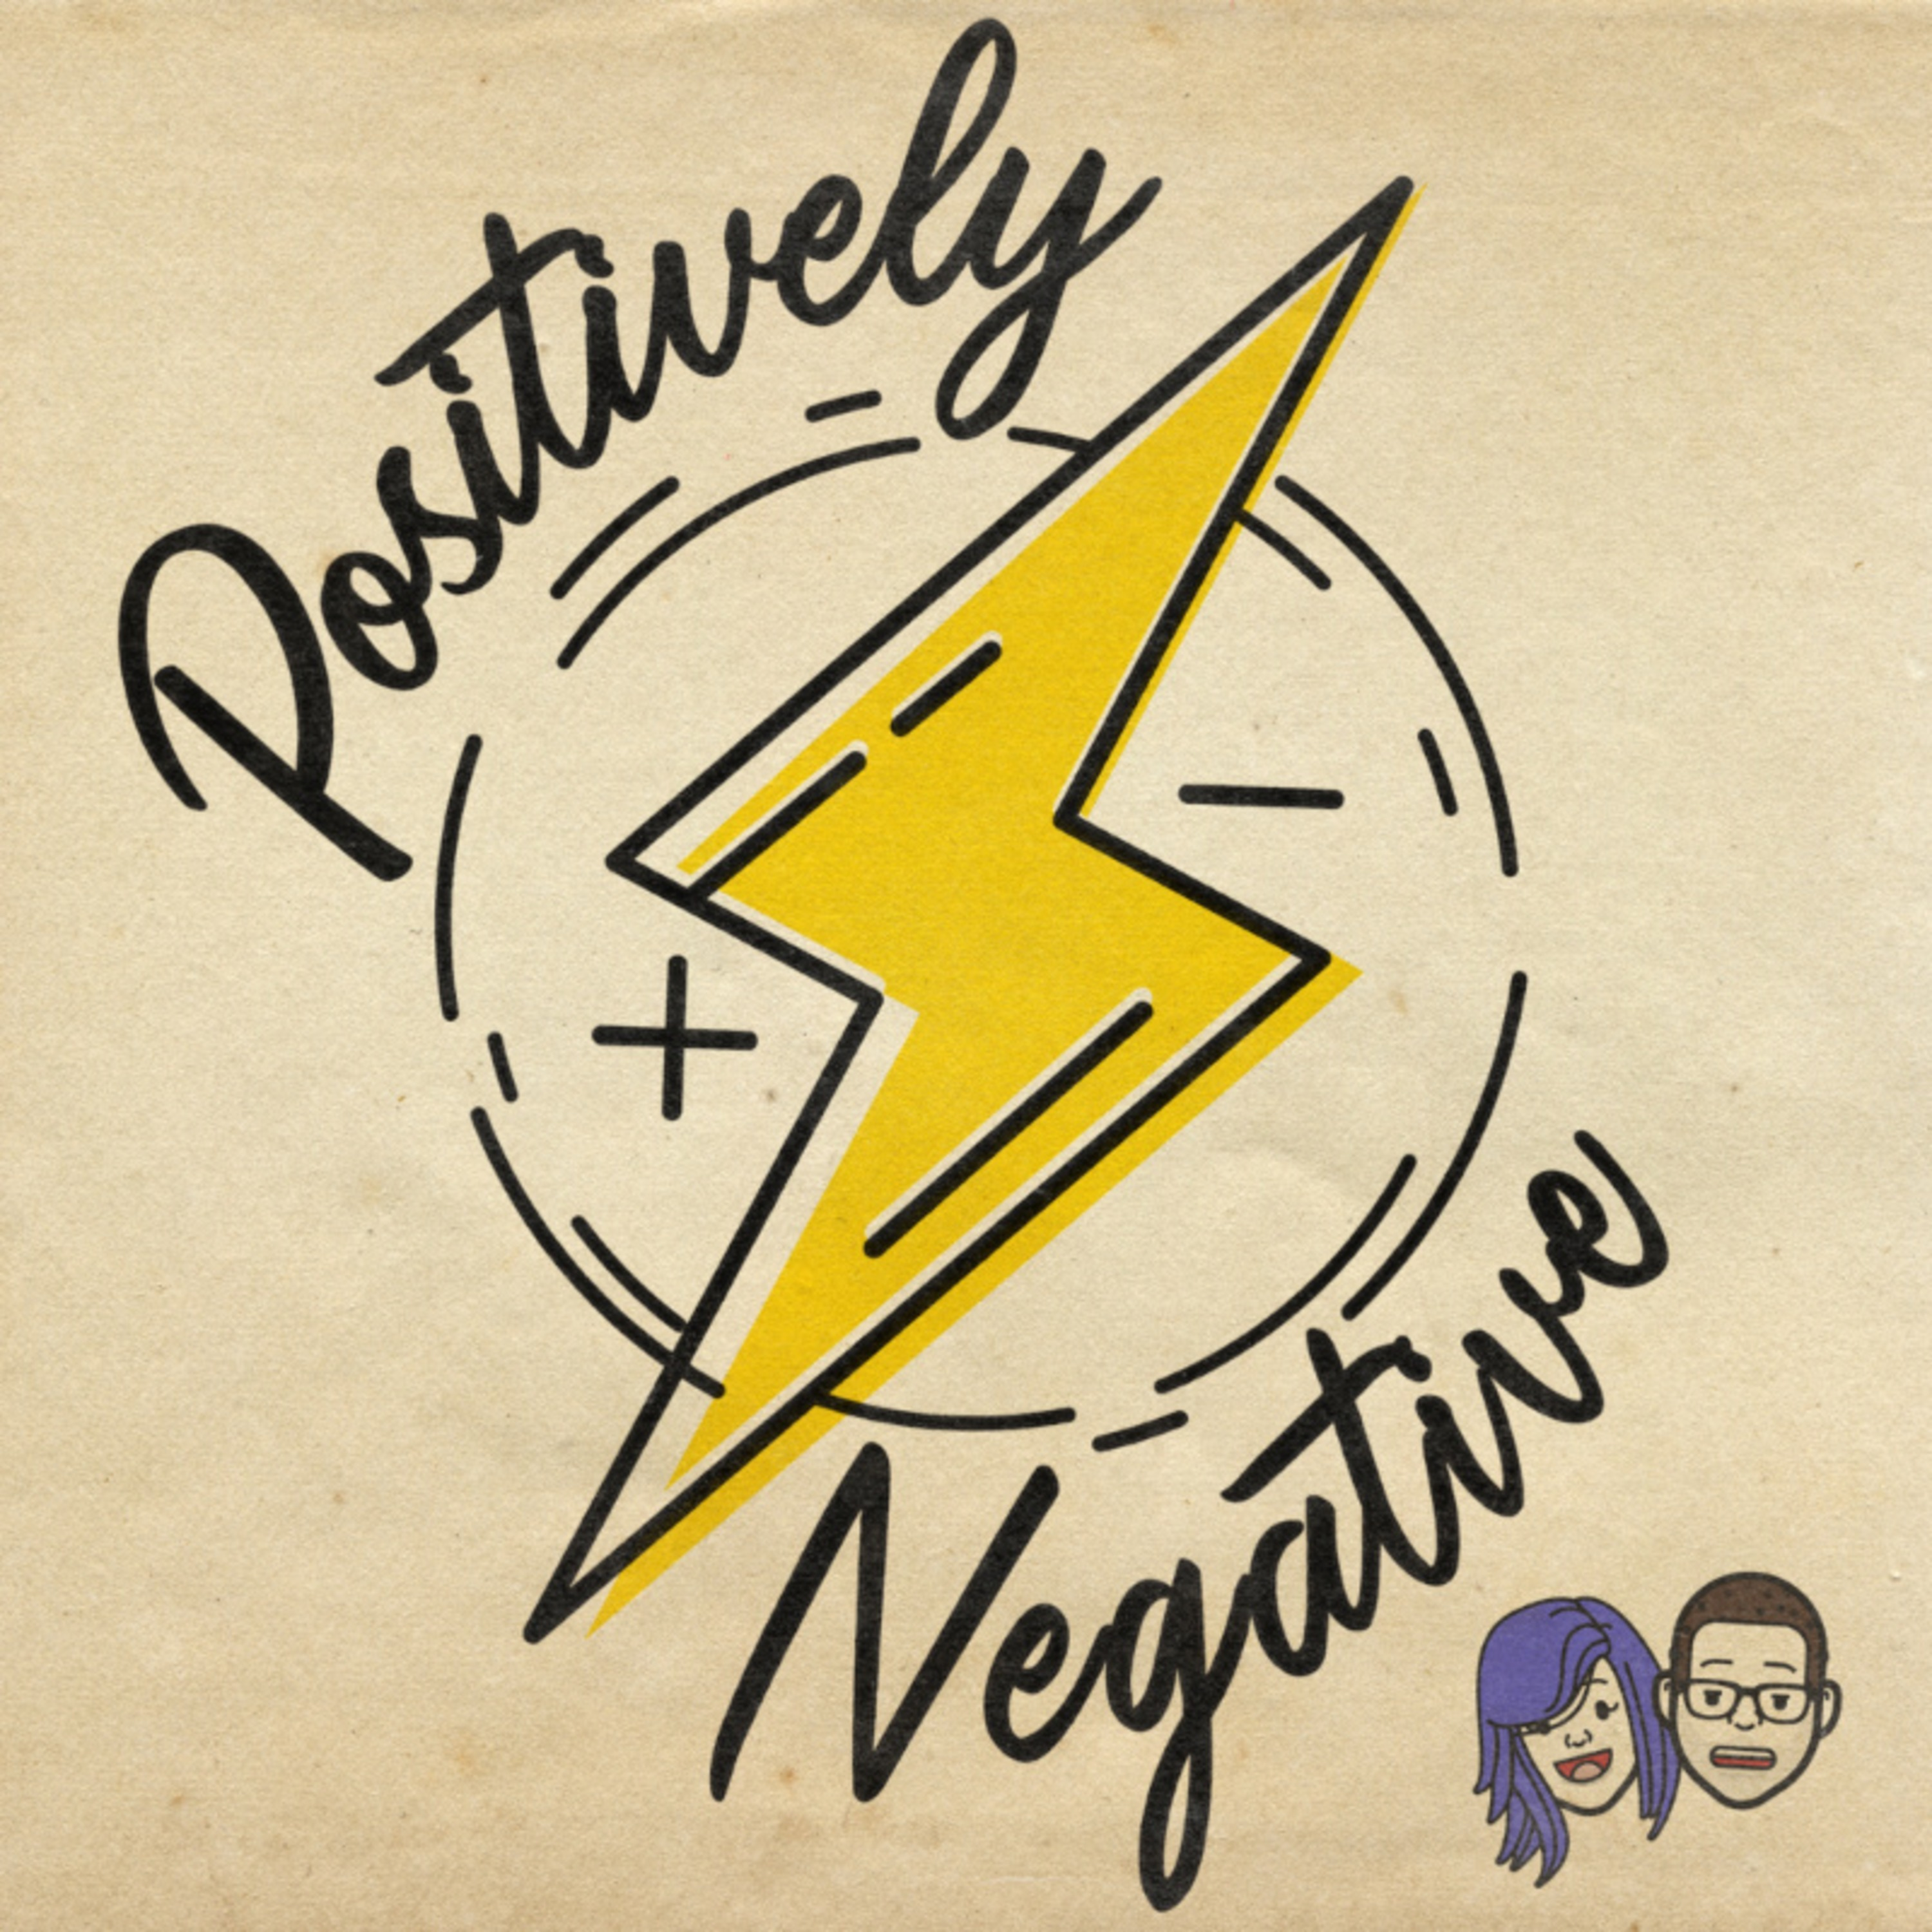 28th -- Positively Negative -- The Temporal Ethics Committee